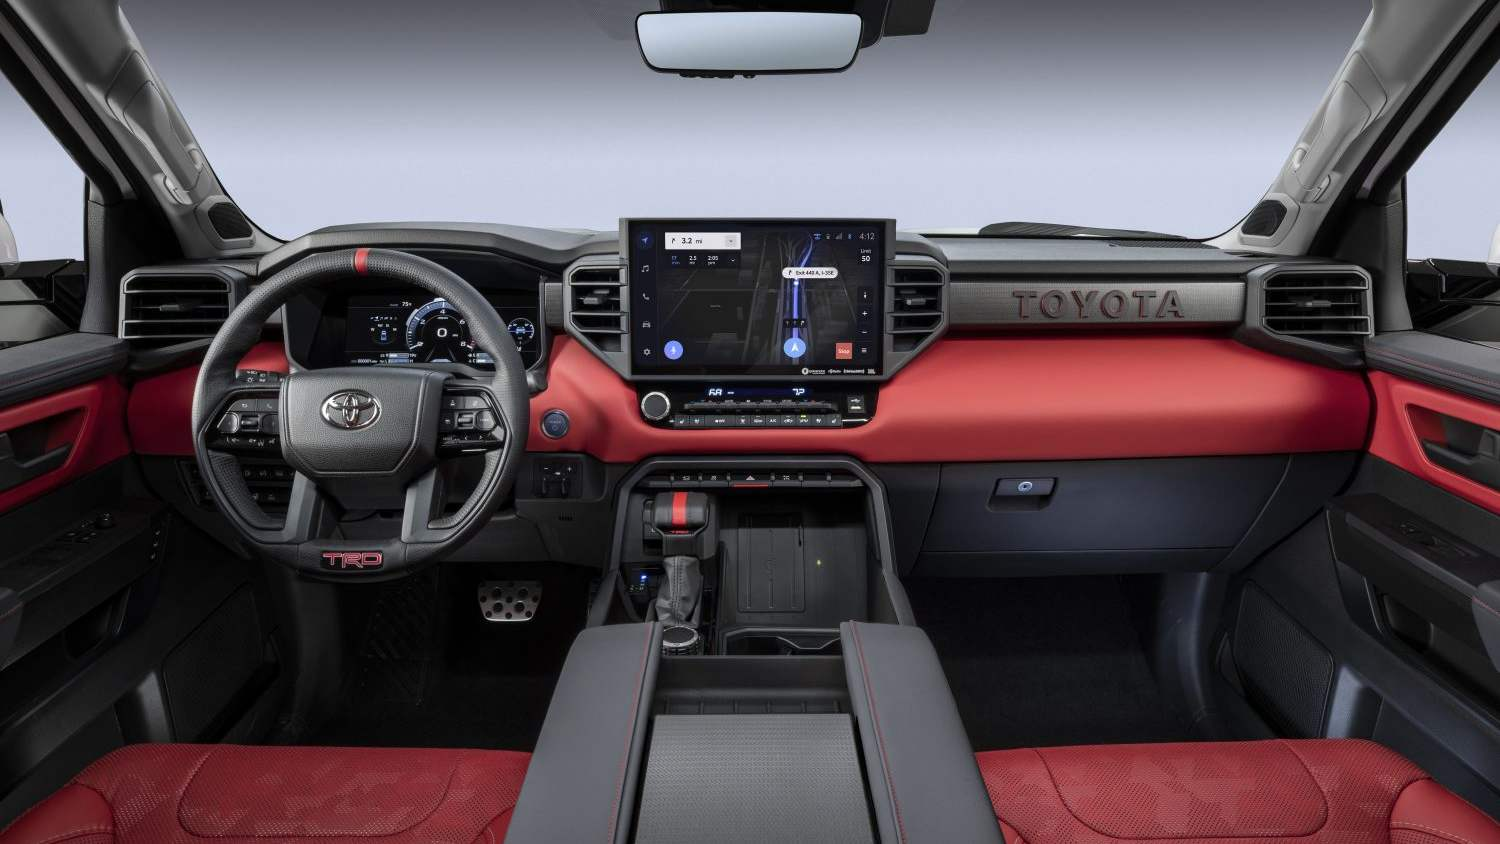 The 14.0-inch touchscreen features Toyota's new Audio Multimedia interface. Image: Toyota